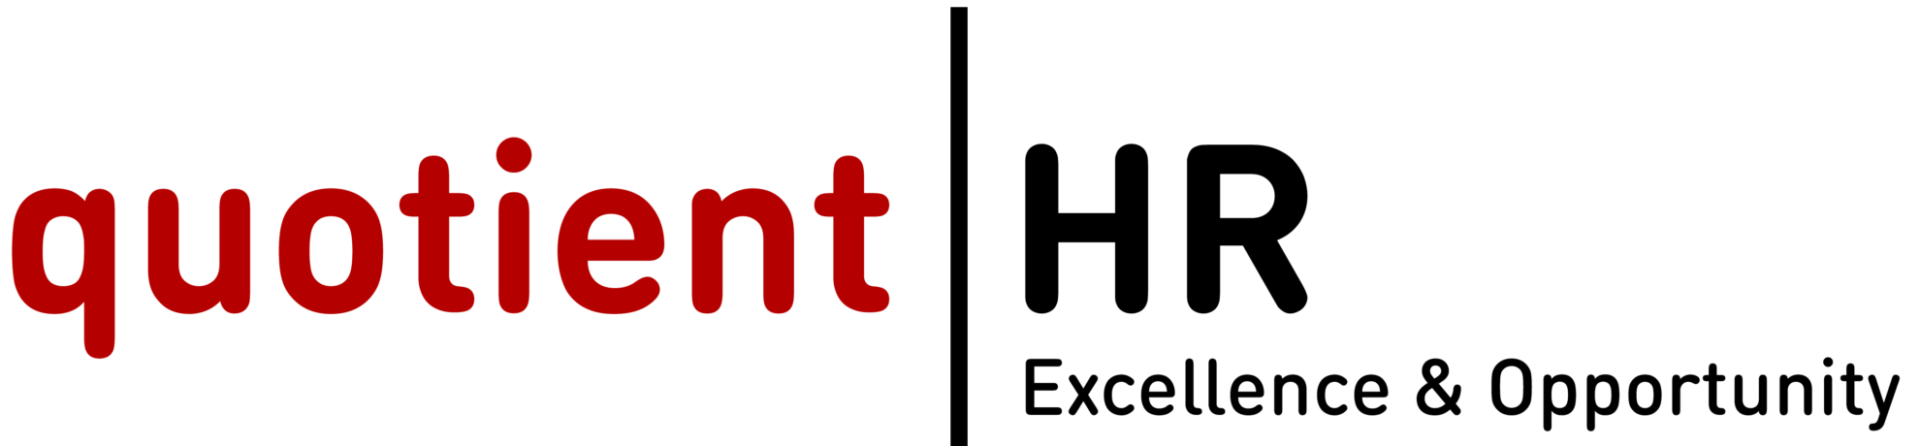 Quotient HR | Excellence and Opportunity